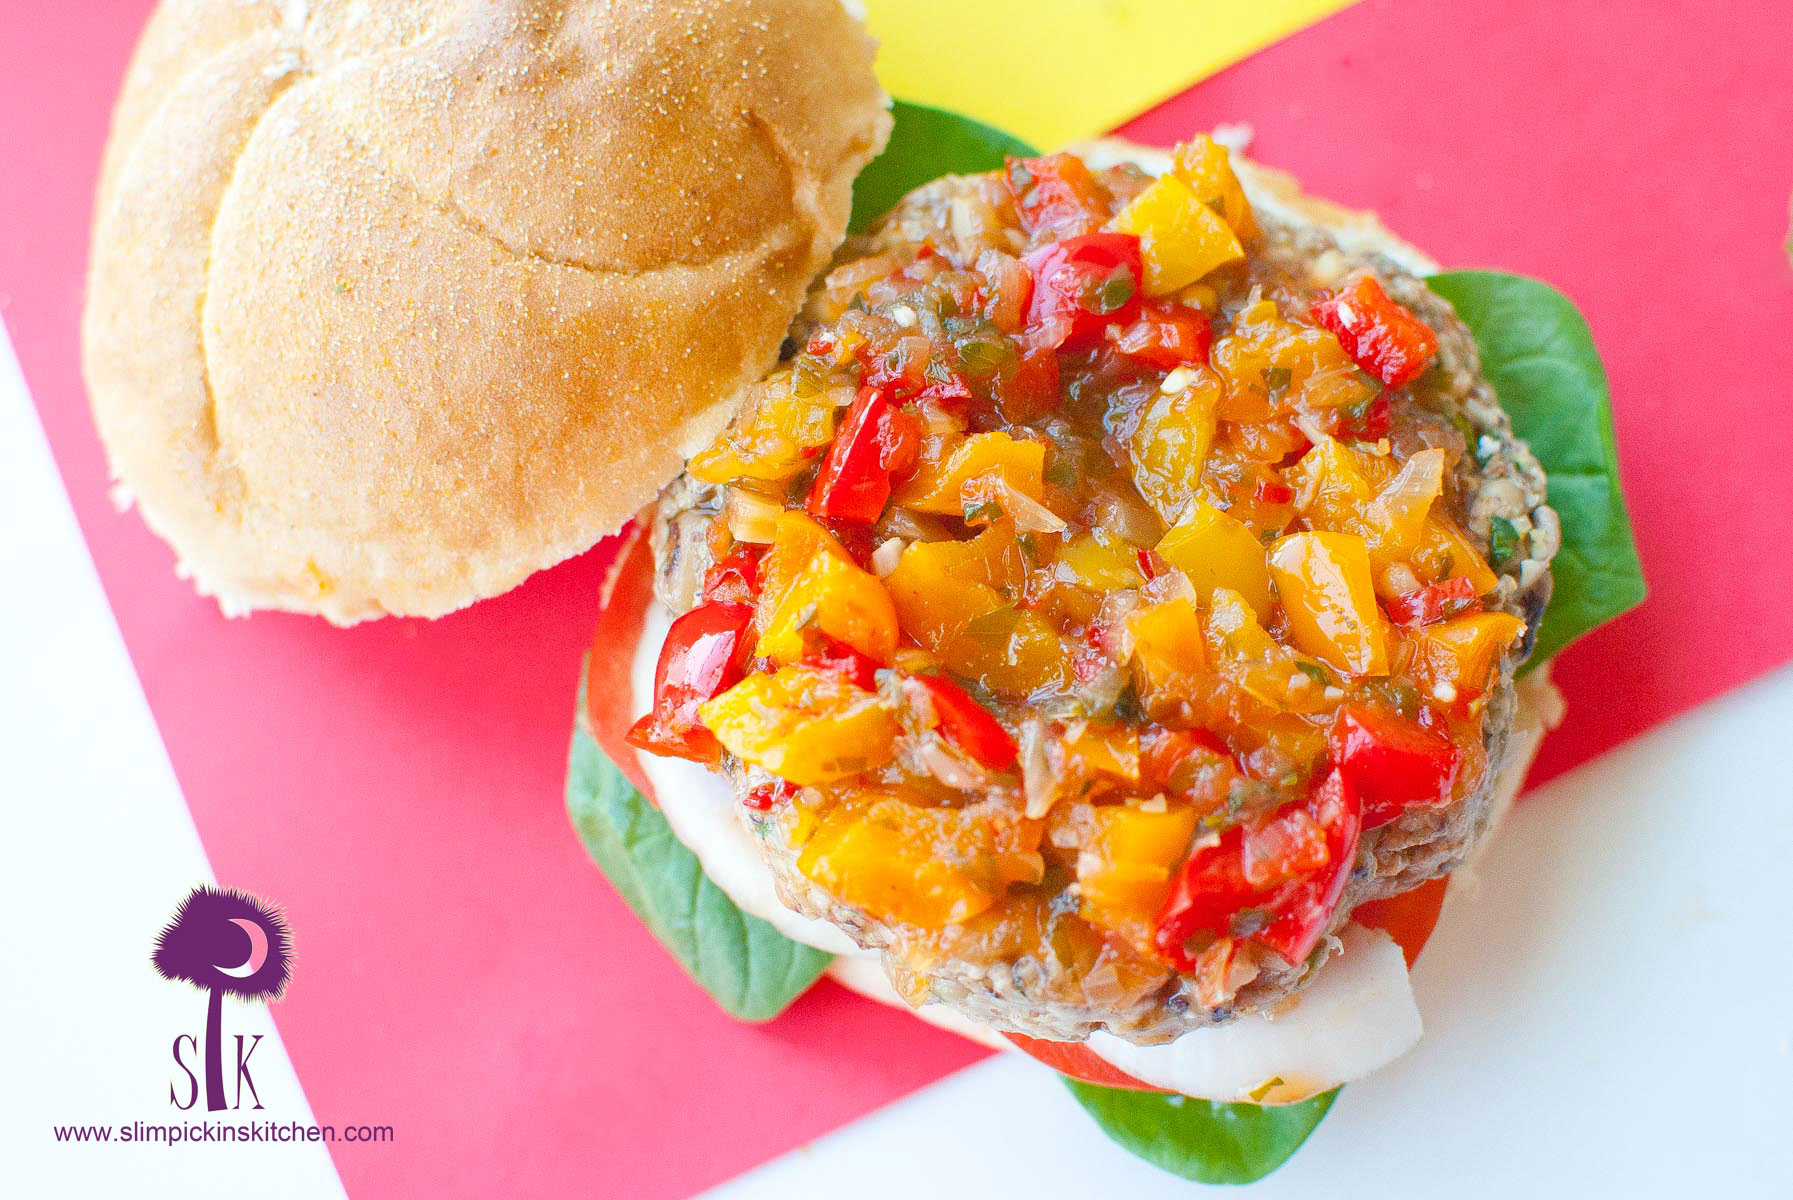 Gluten-Free-Black-Eyed-Pea-Burgers-with-a-Sweet-Chili-Pepper-Chutney-3